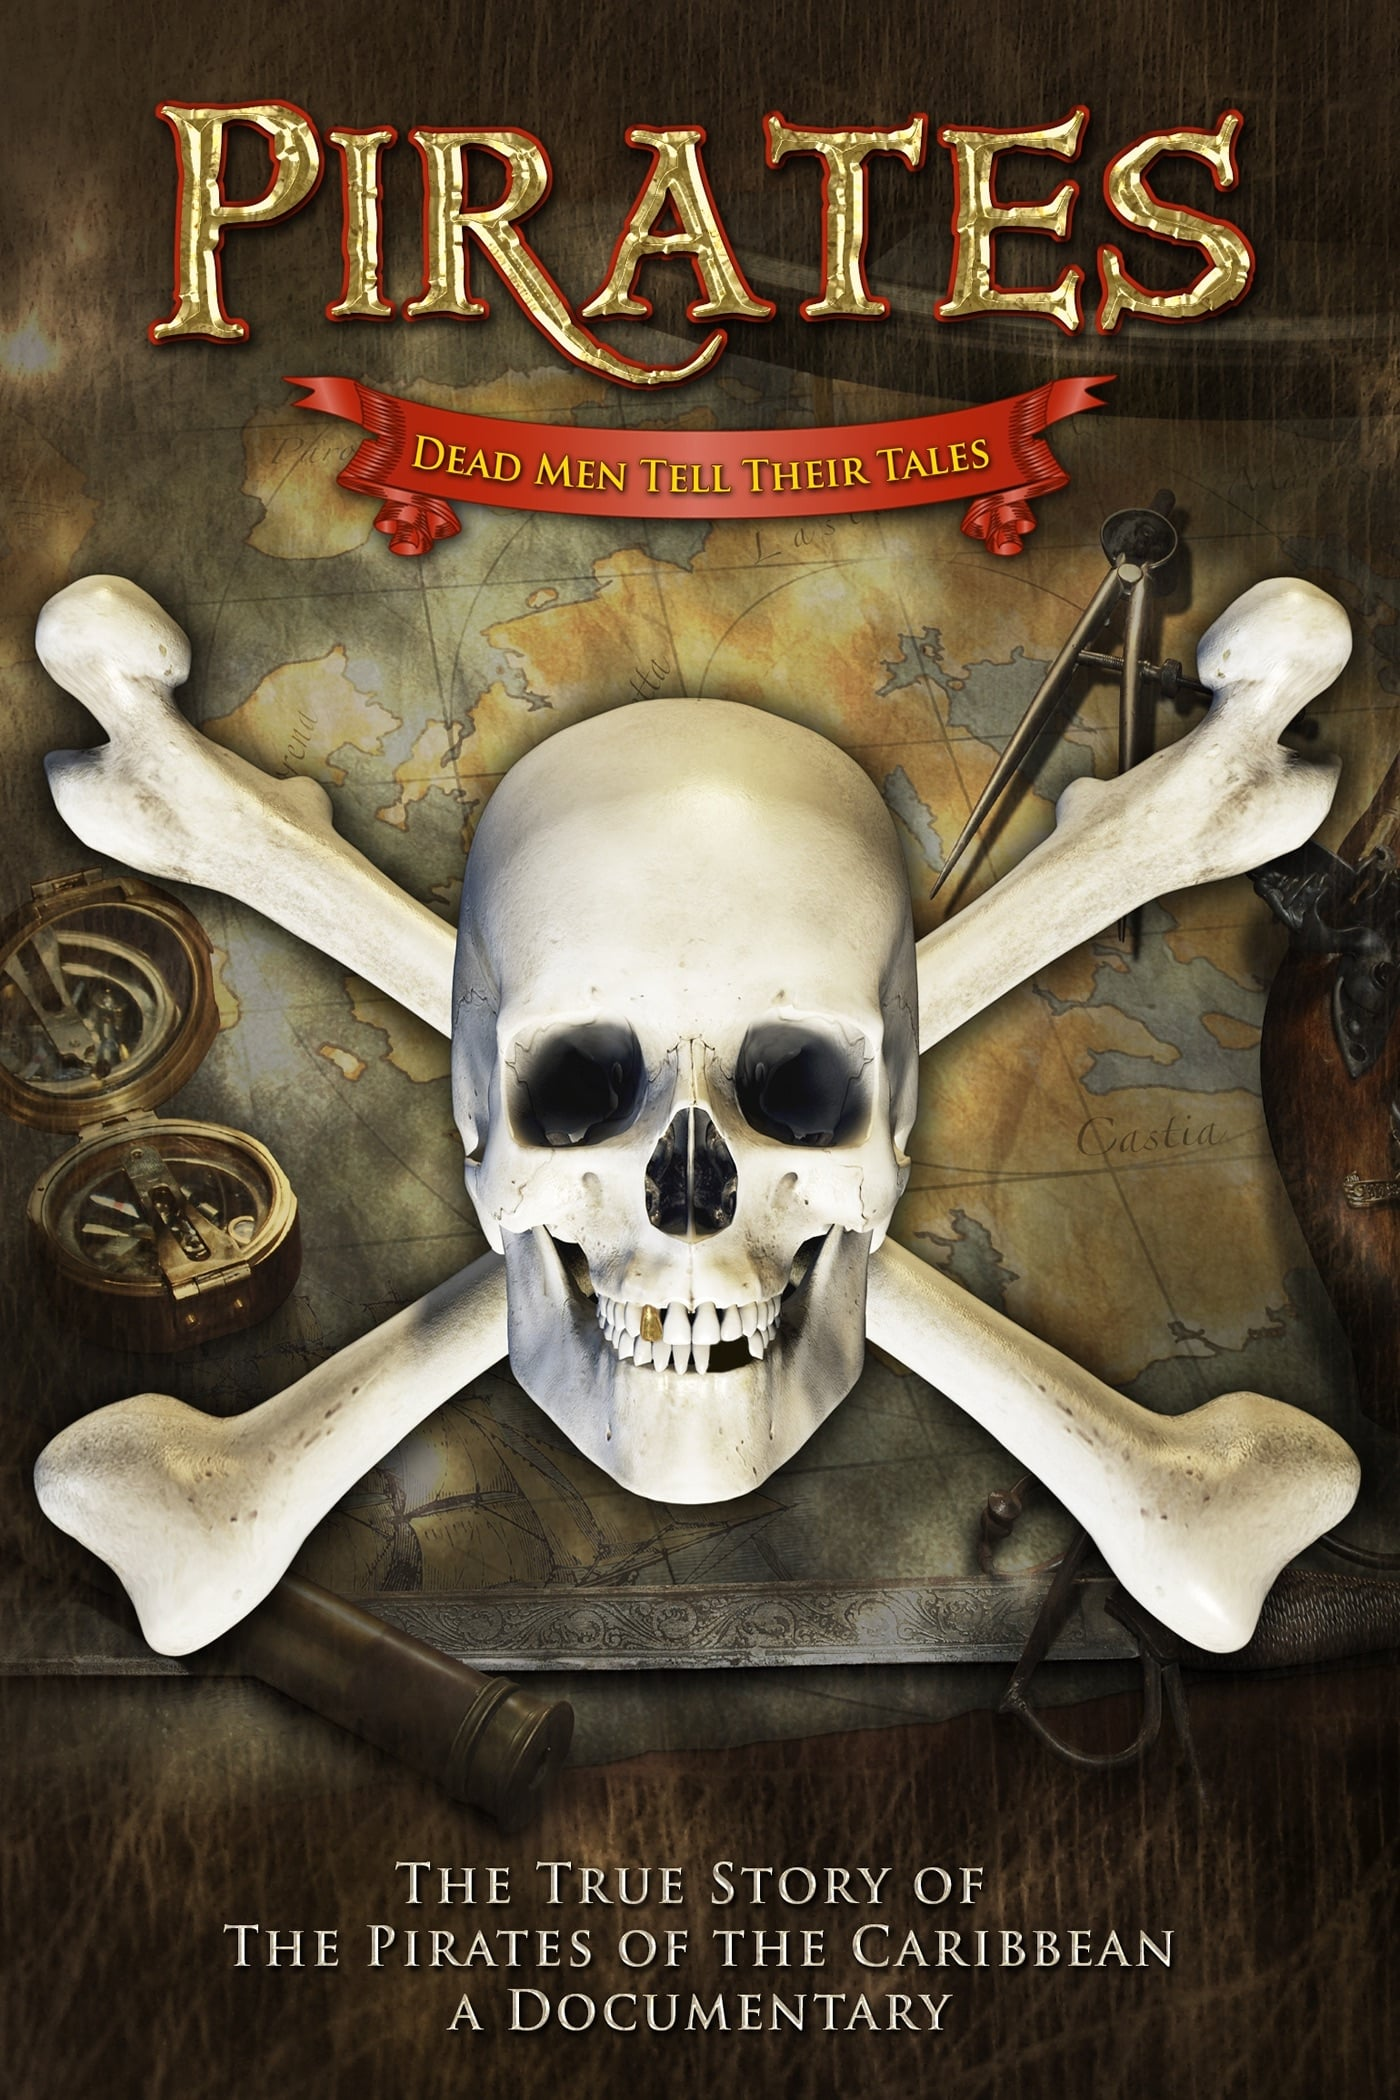 Pirates: Dead Men Tell Their Tales - The True Story of the Pirates of the Caribbean, A Documentary